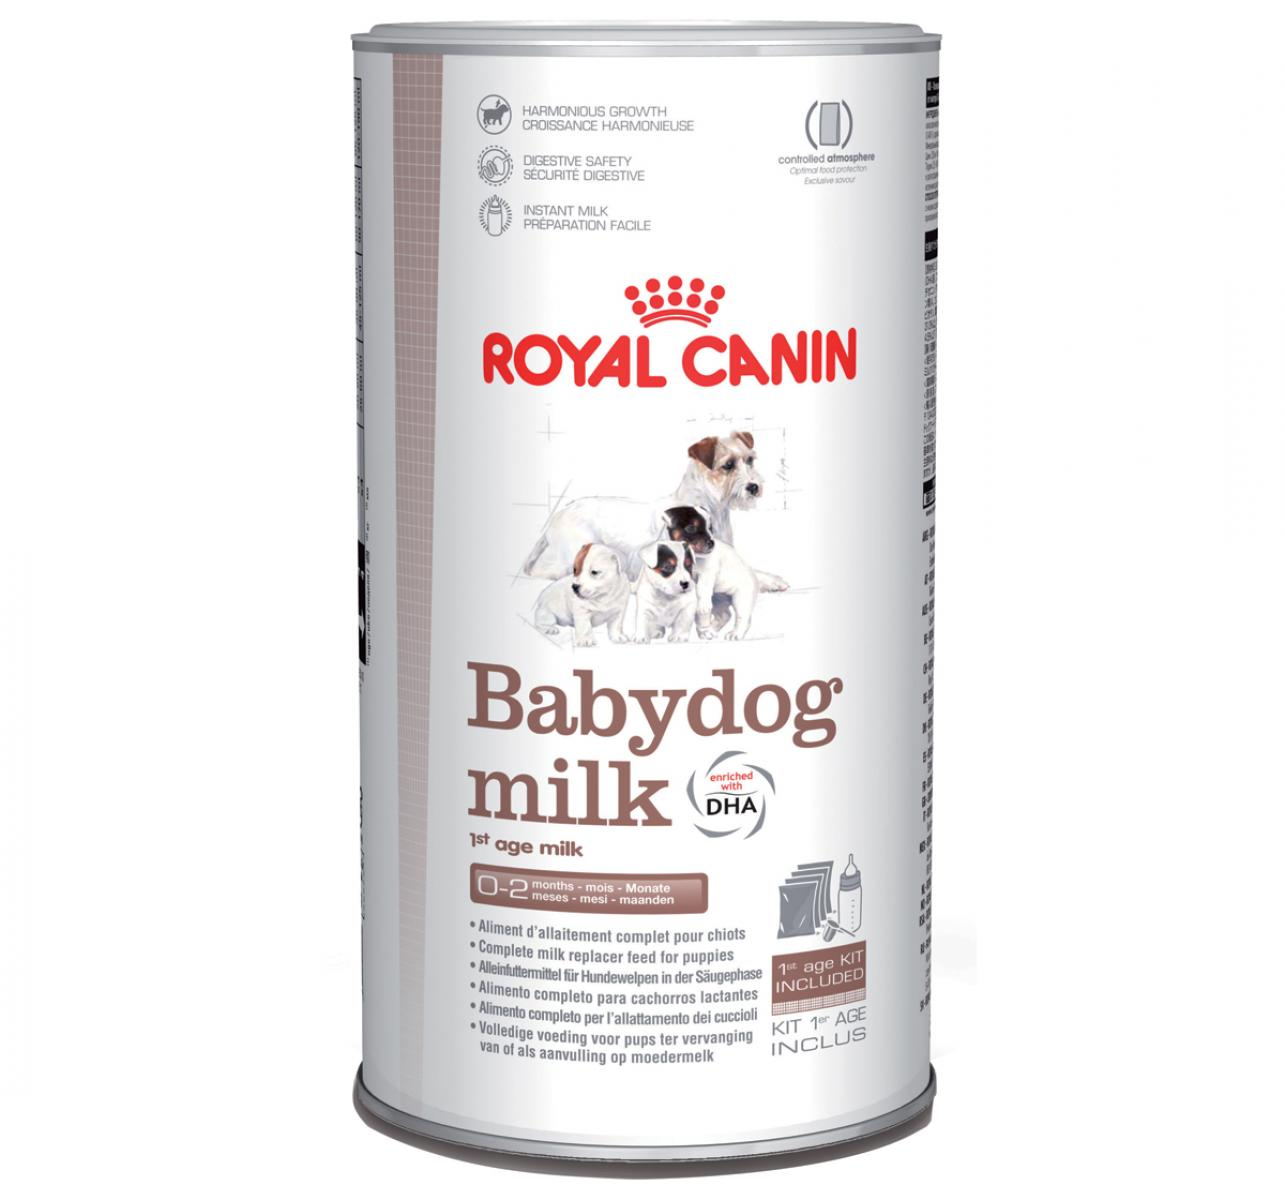 Royal Canin Baby Dog Milk For Puppies - 400 Gms